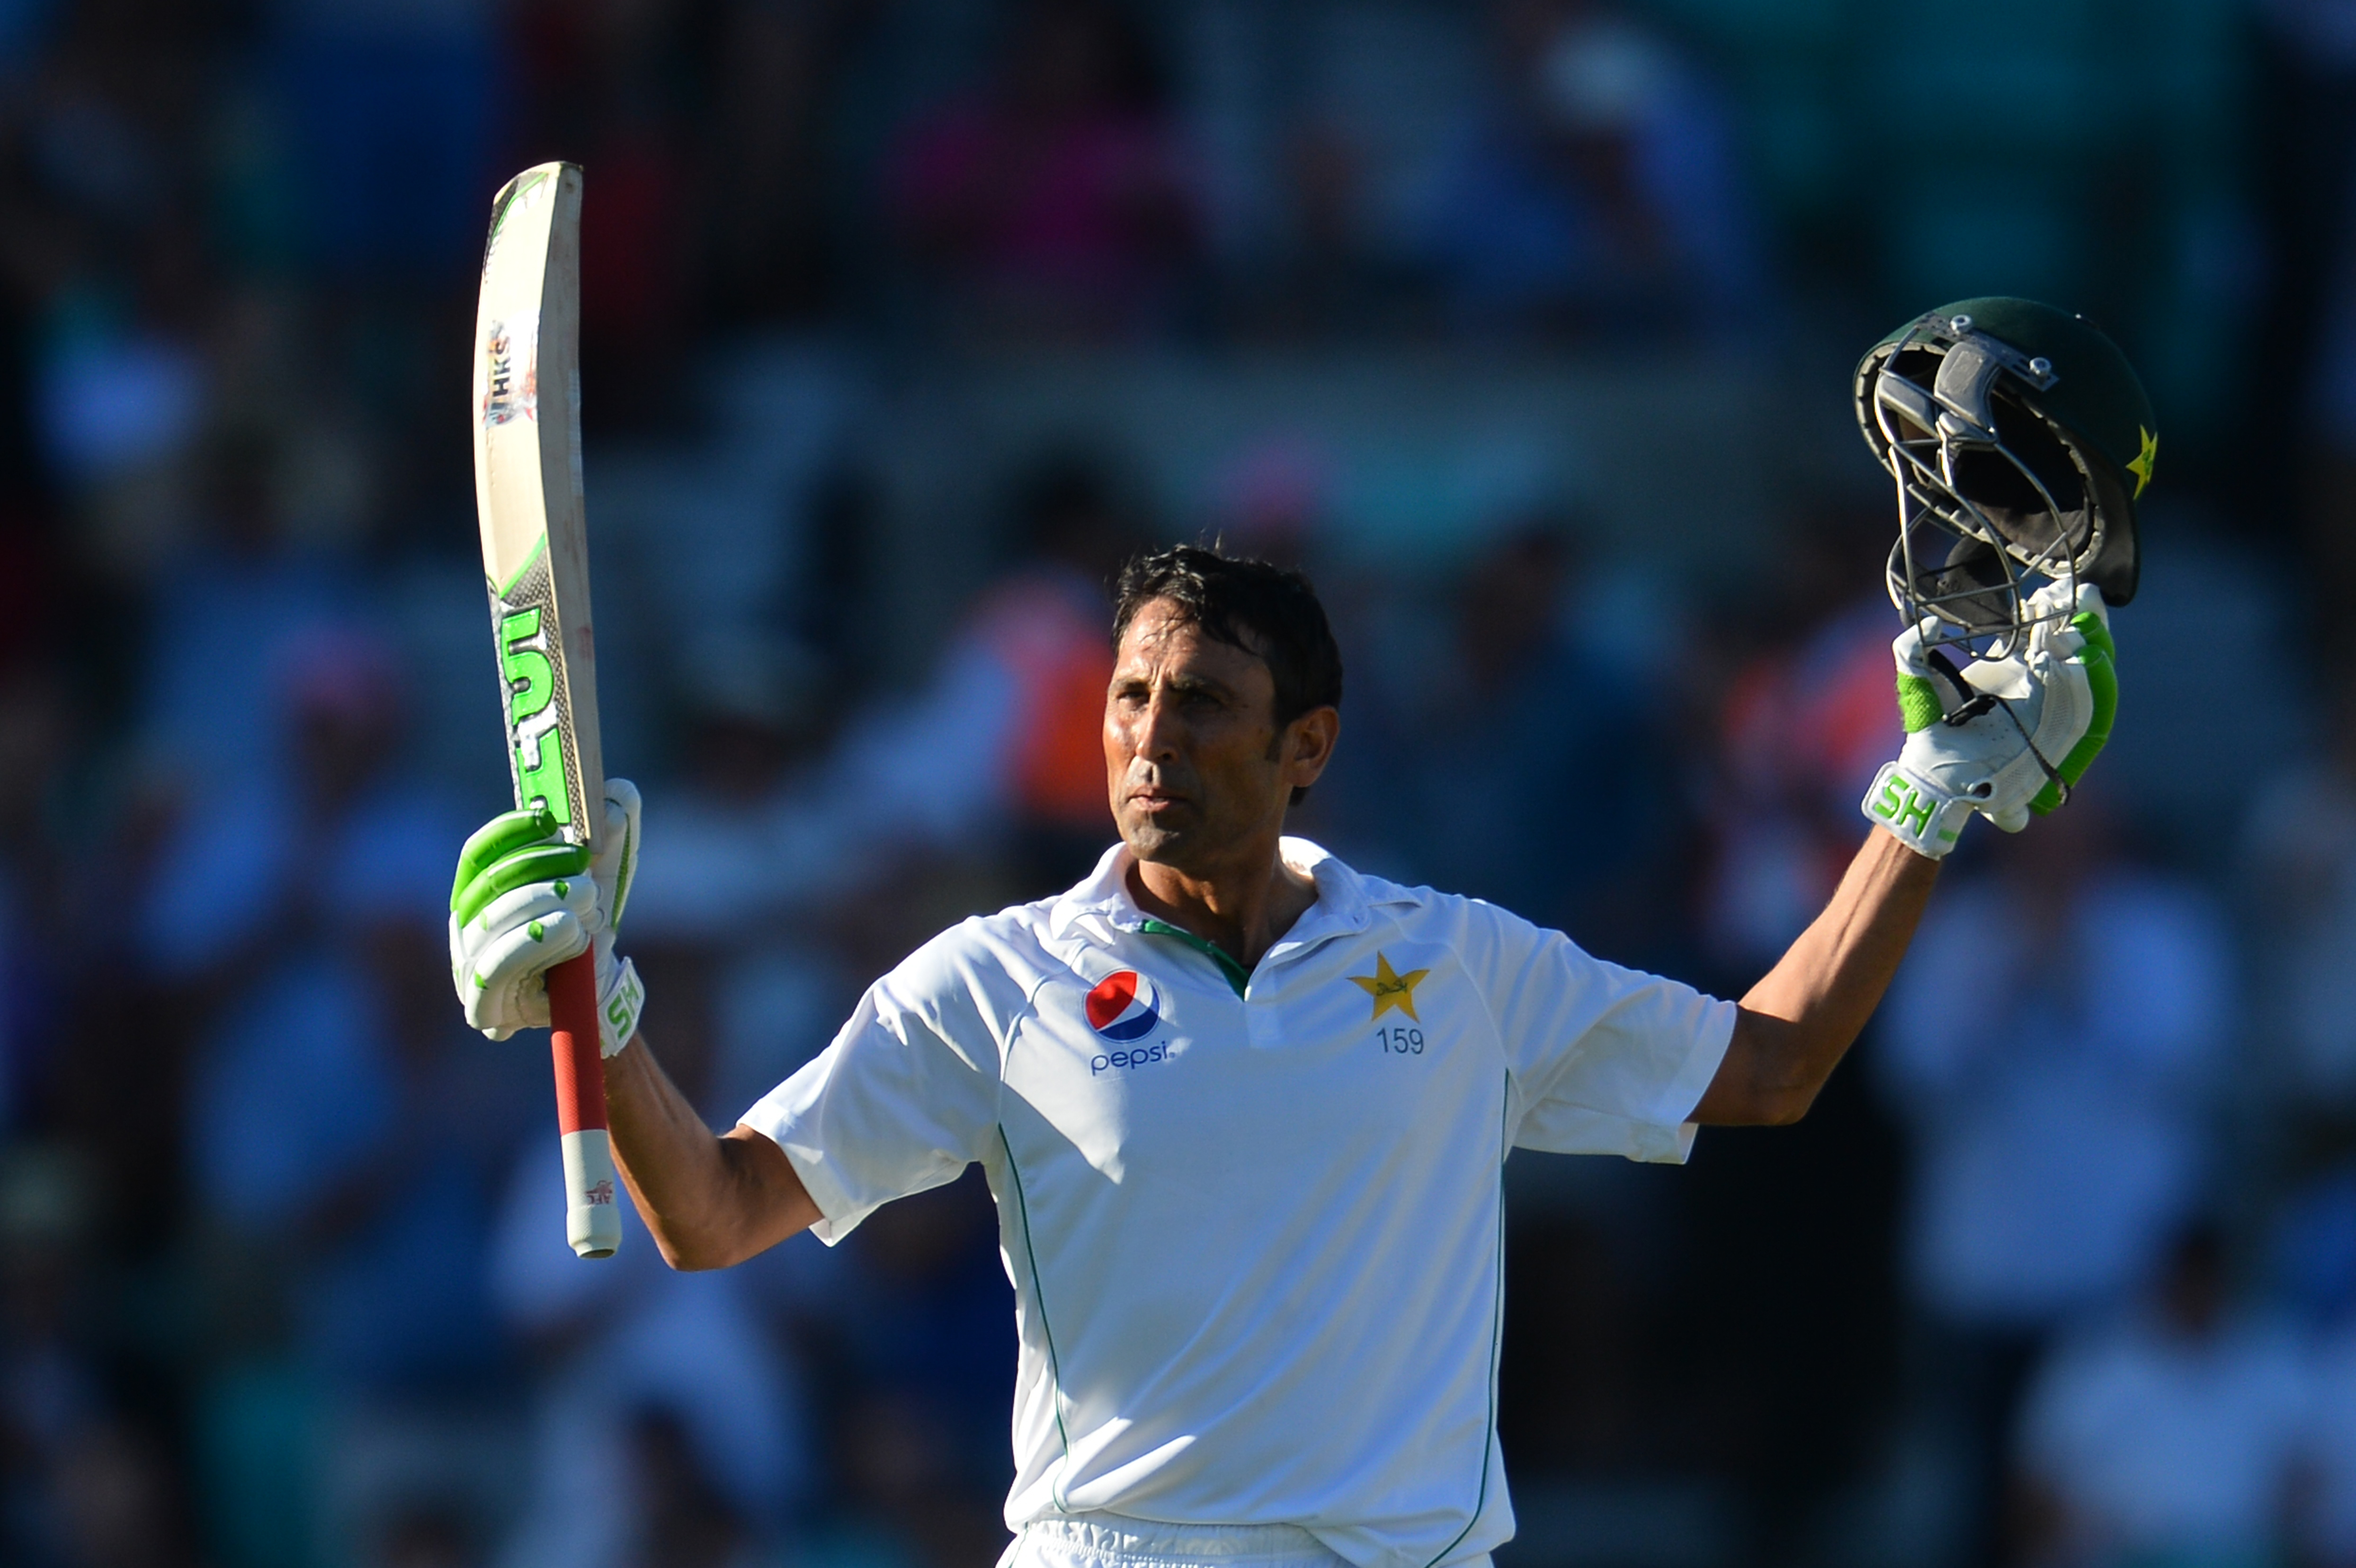 Pakistan's Younus Khan celebrates making a century (100 runs) on the second day of the fourth test cricket match between England and Pakistan at the Oval in London on August 12, 2016.   / AFP PHOTO / GLYN KIRK / RESTRICTED TO EDITORIAL USE. NO ASSOCIATION WITH DIRECT COMPETITOR OF SPONSOR, PARTNER, OR SUPPLIER OF THE ECB